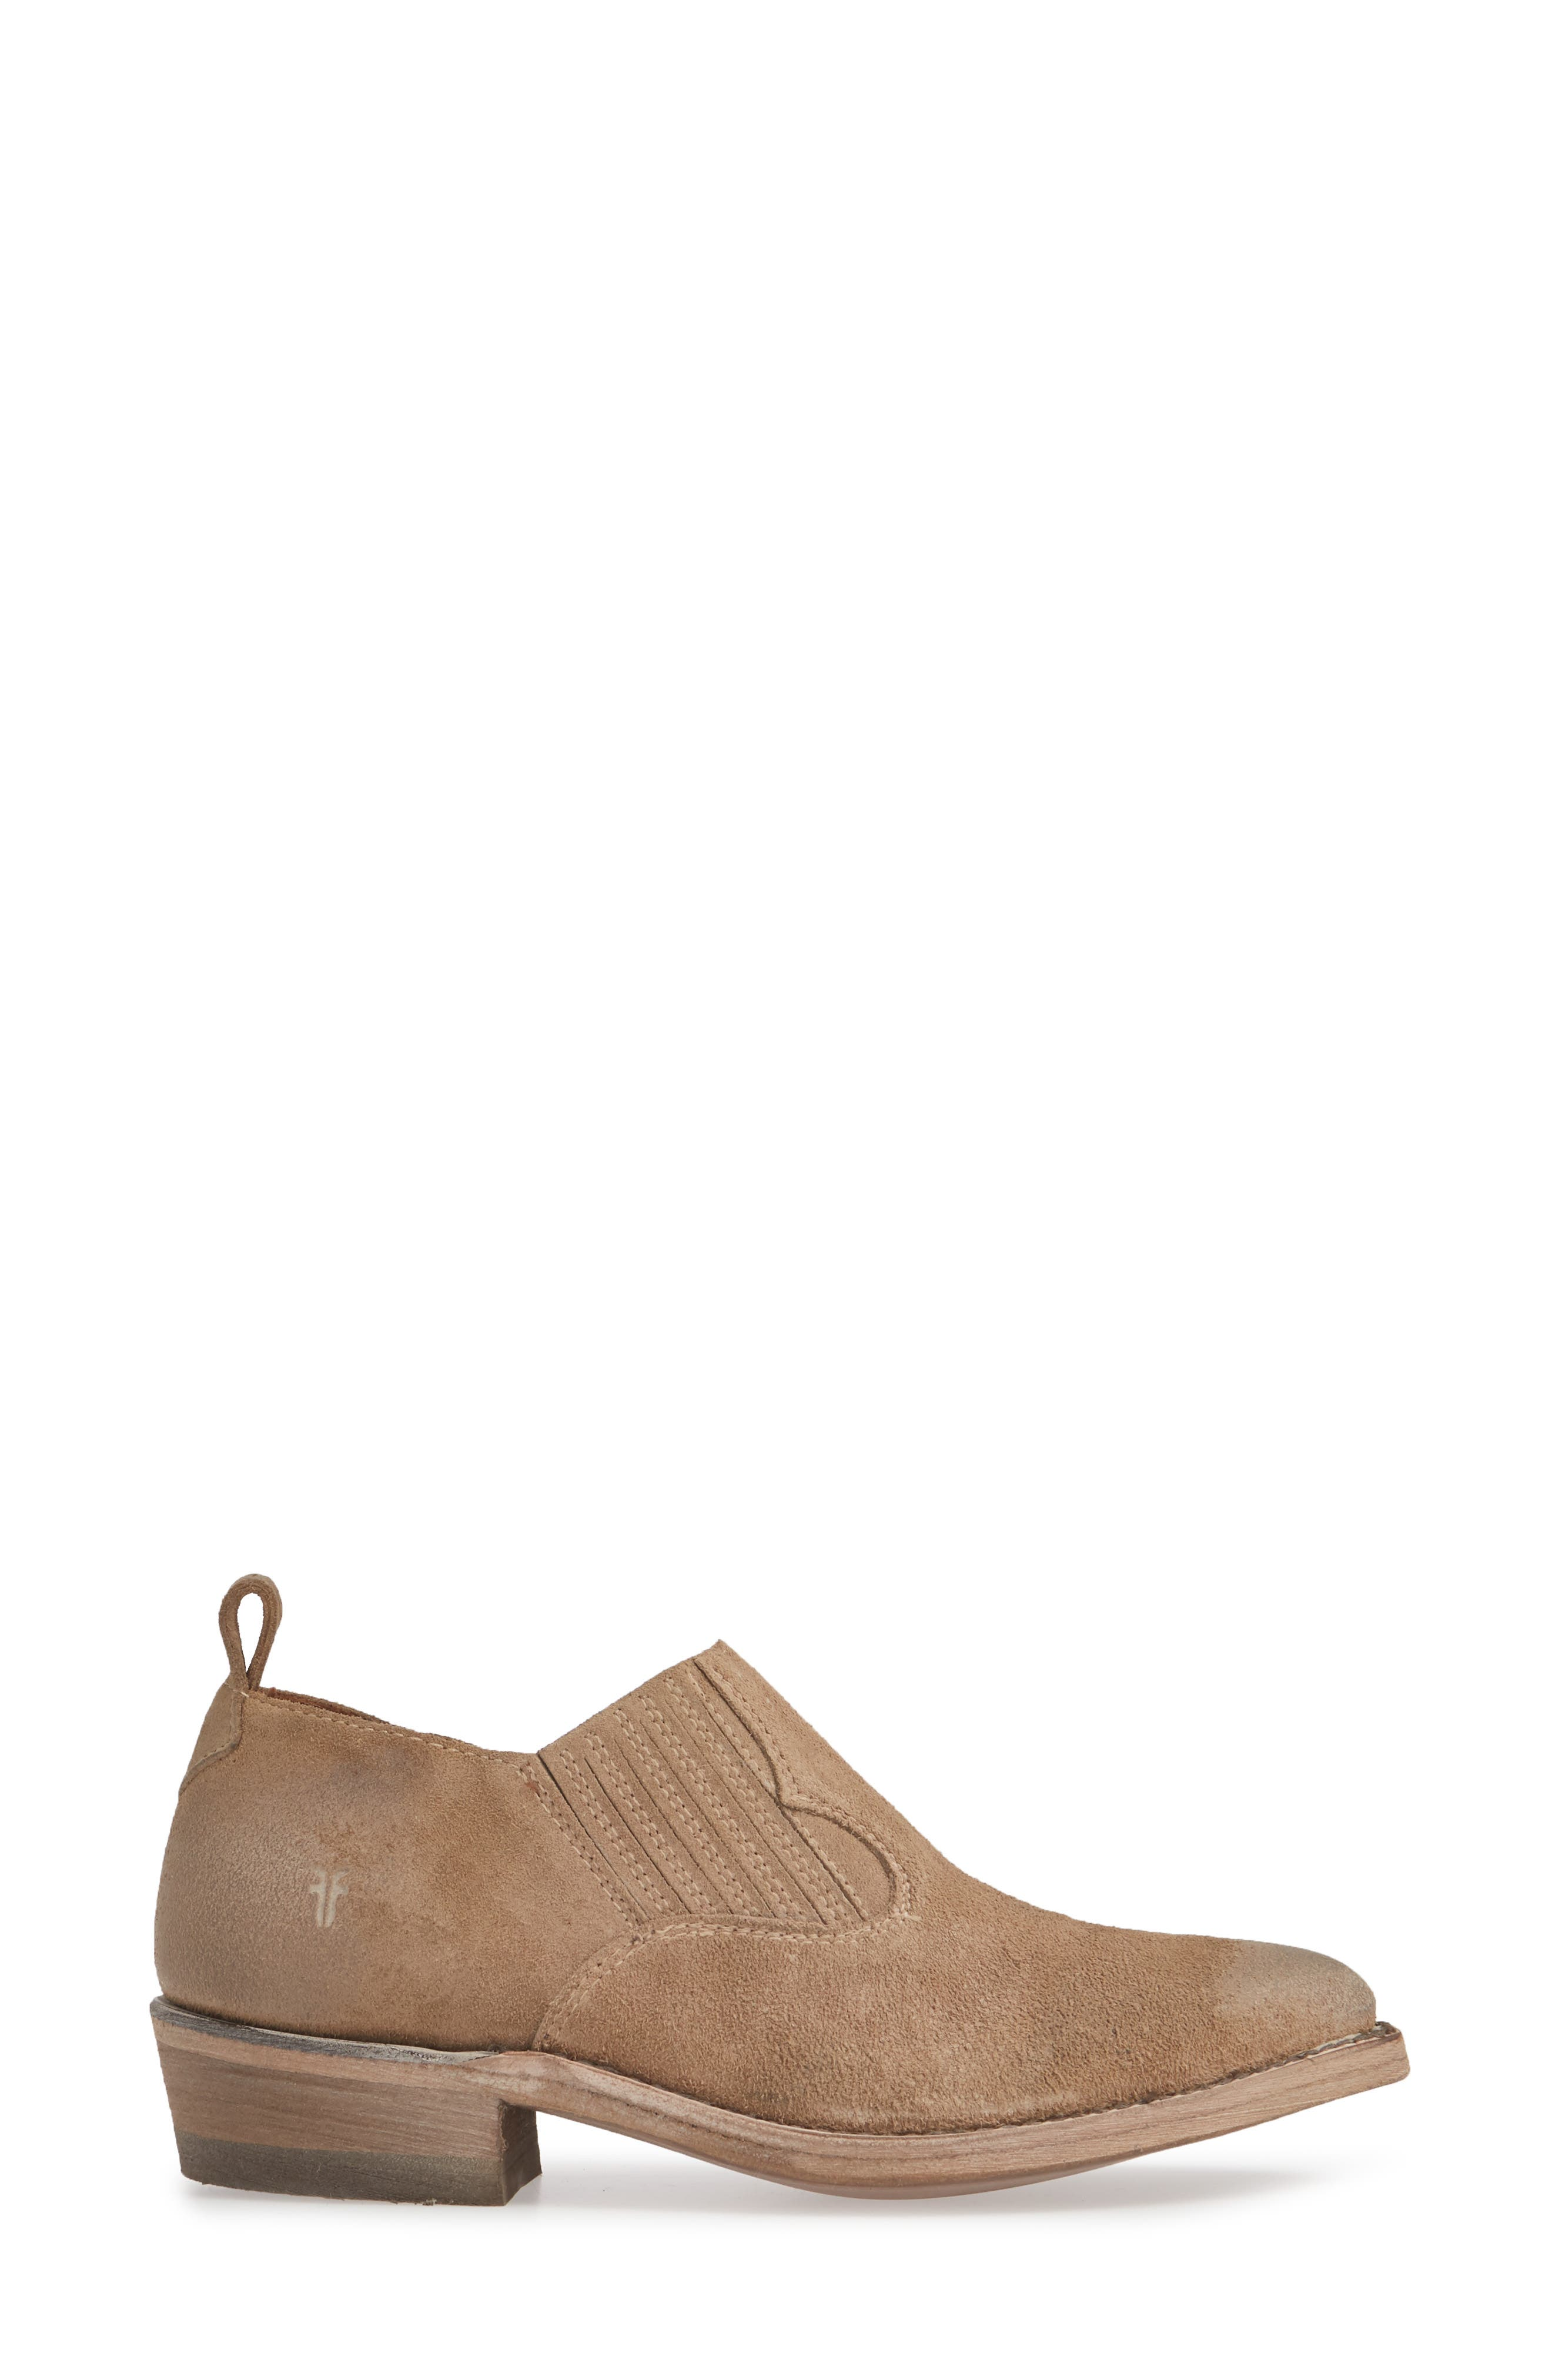 FRYE, Billy Western Bootie, Alternate thumbnail 3, color, 250